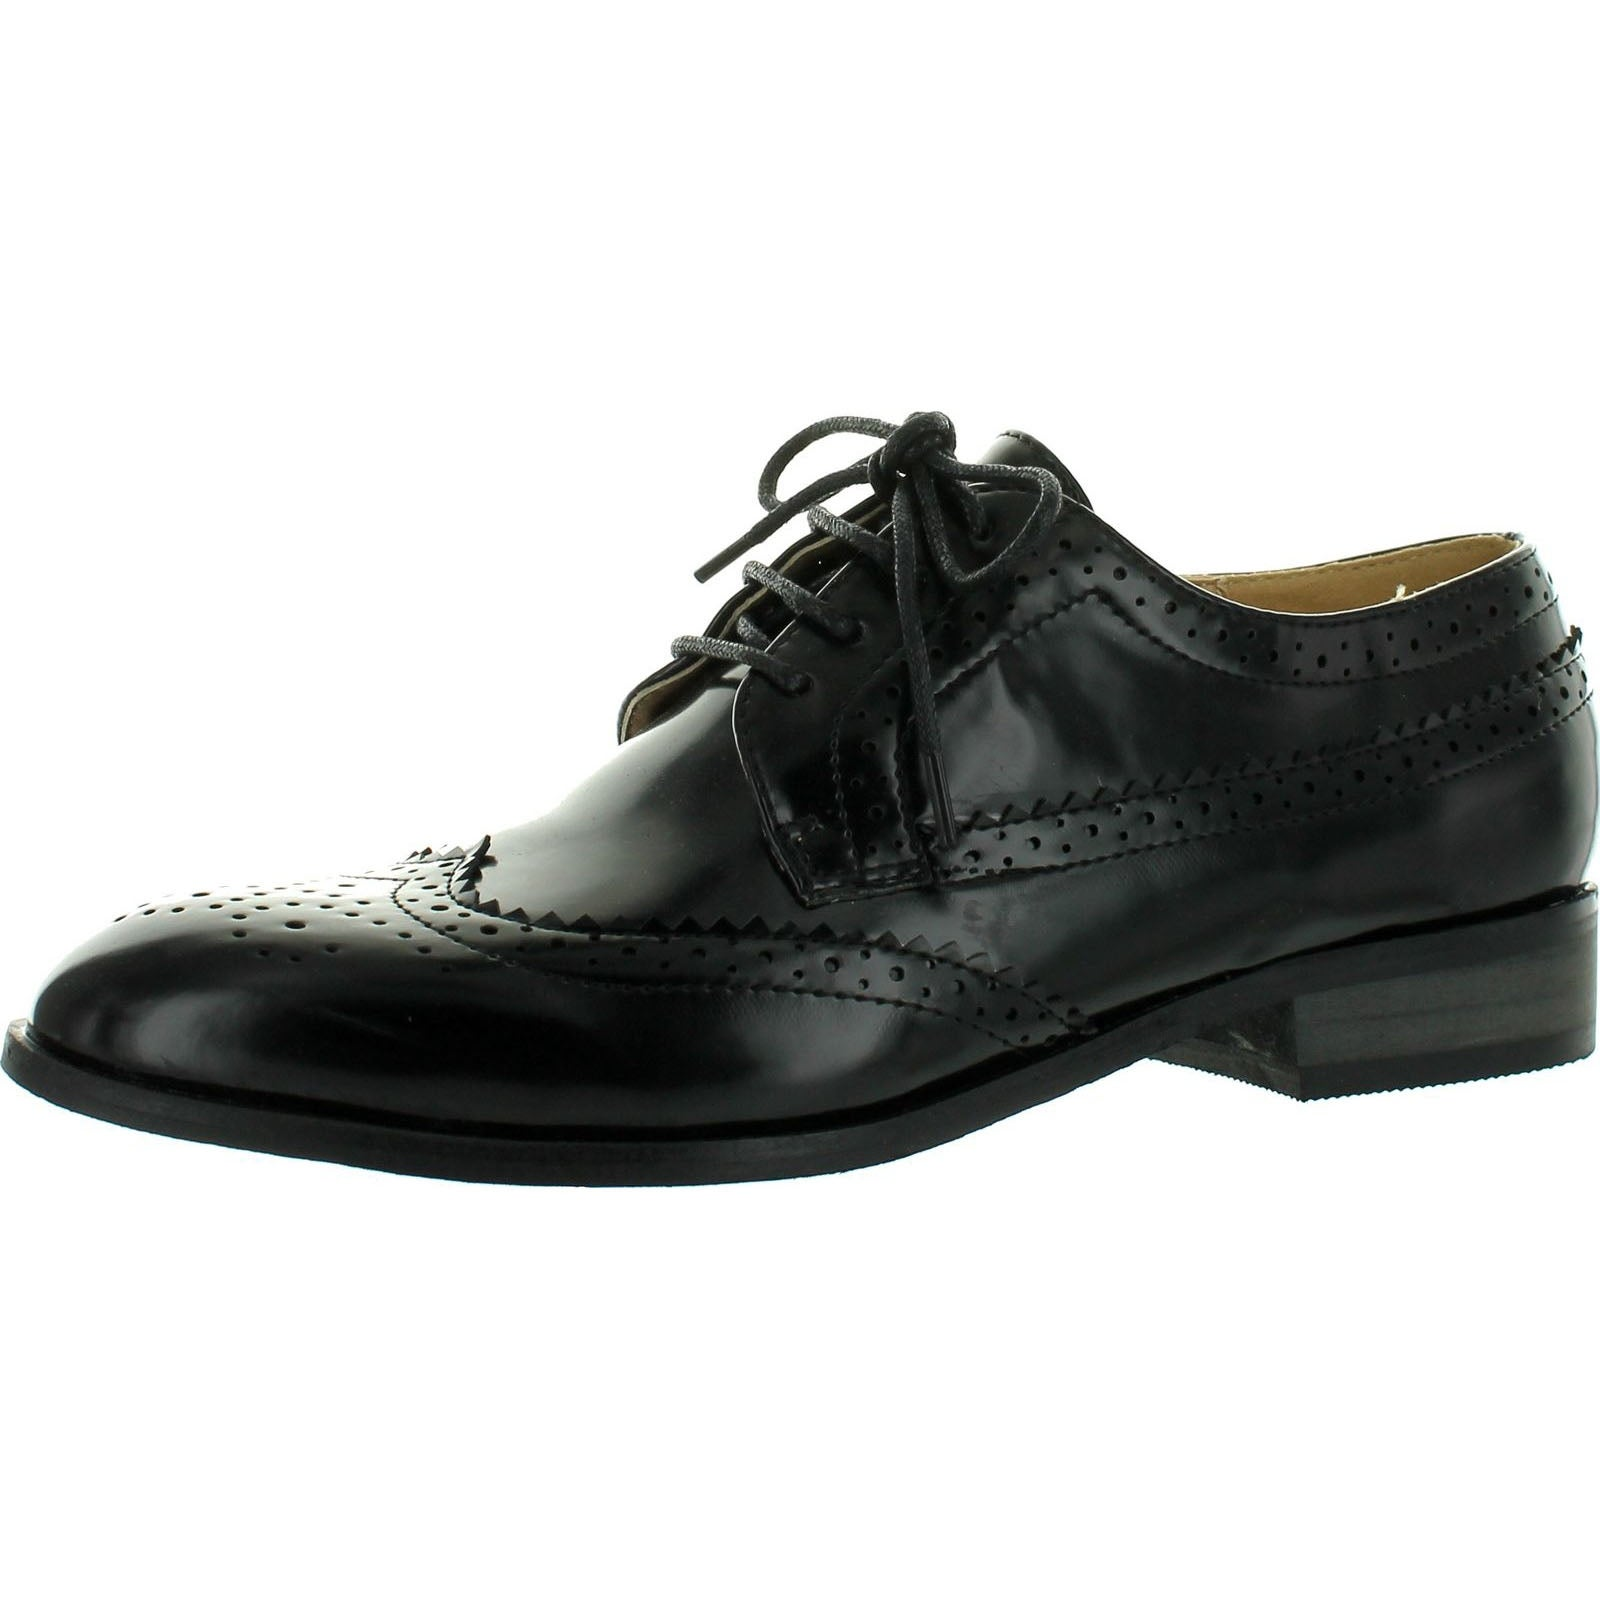 0538a2ee5 Buy Women's Oxfords Online at Overstock | Our Best Women's Shoes Deals